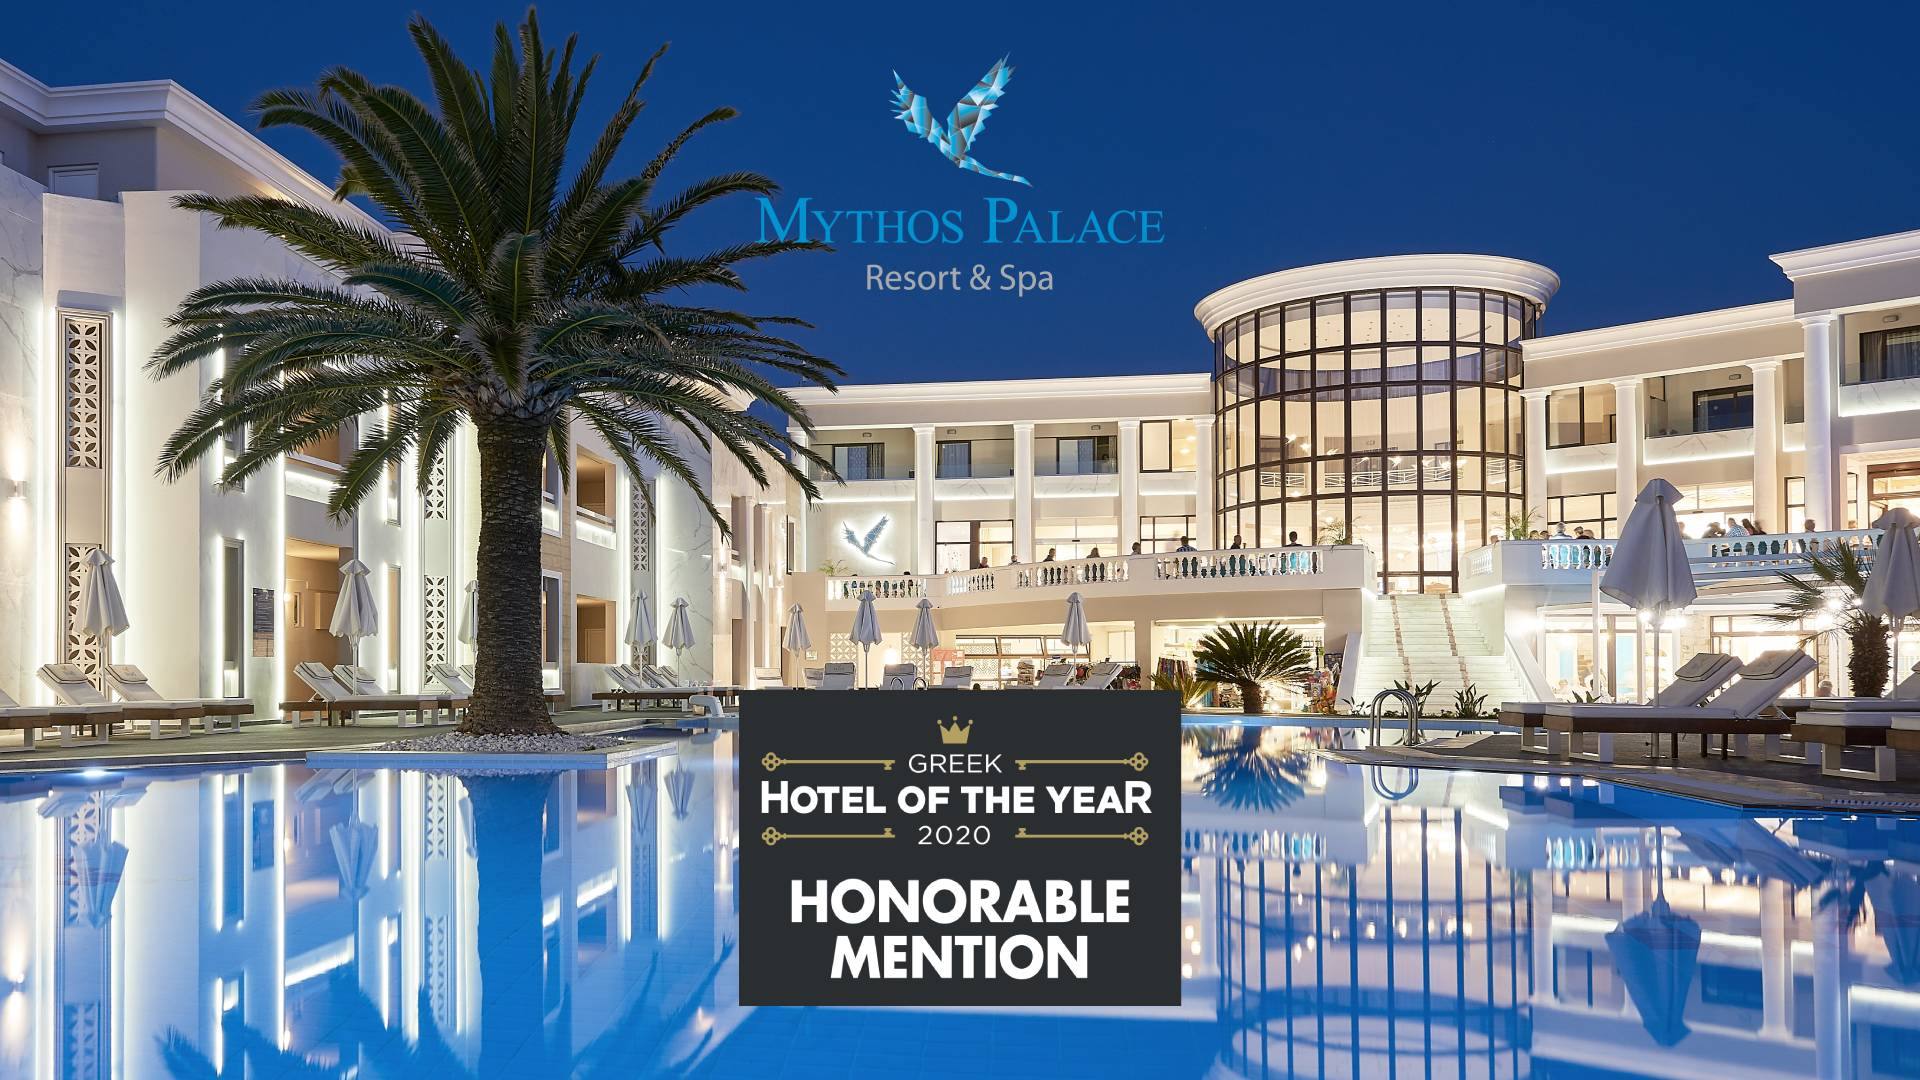 Honorable Mention For Mythos Palace Resort & Spa By The Greek Hotel Of The Year Awards 2020